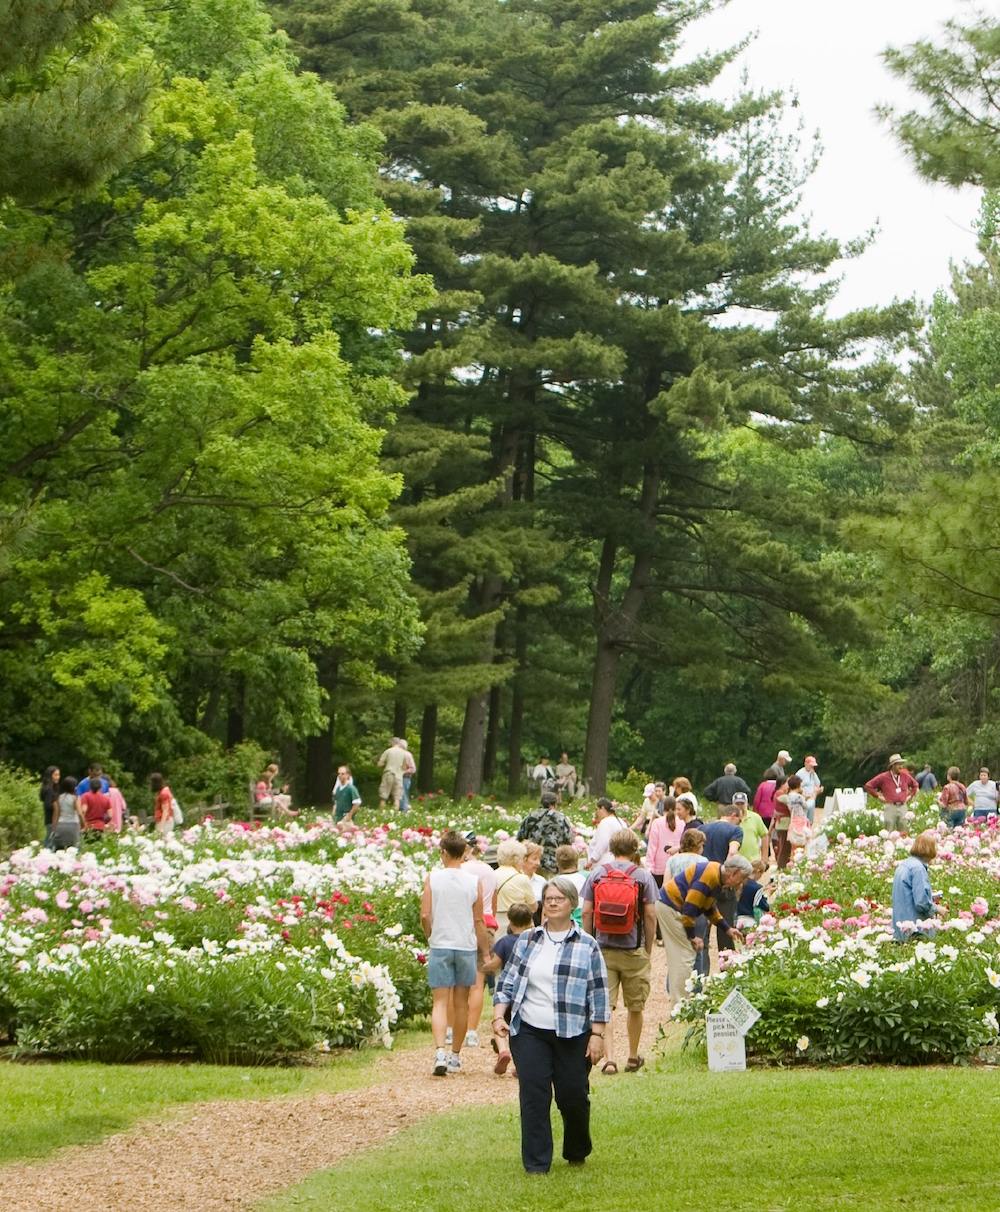 Other area museums include the Matthaei Botanical Gardens & Nichols Arboretum